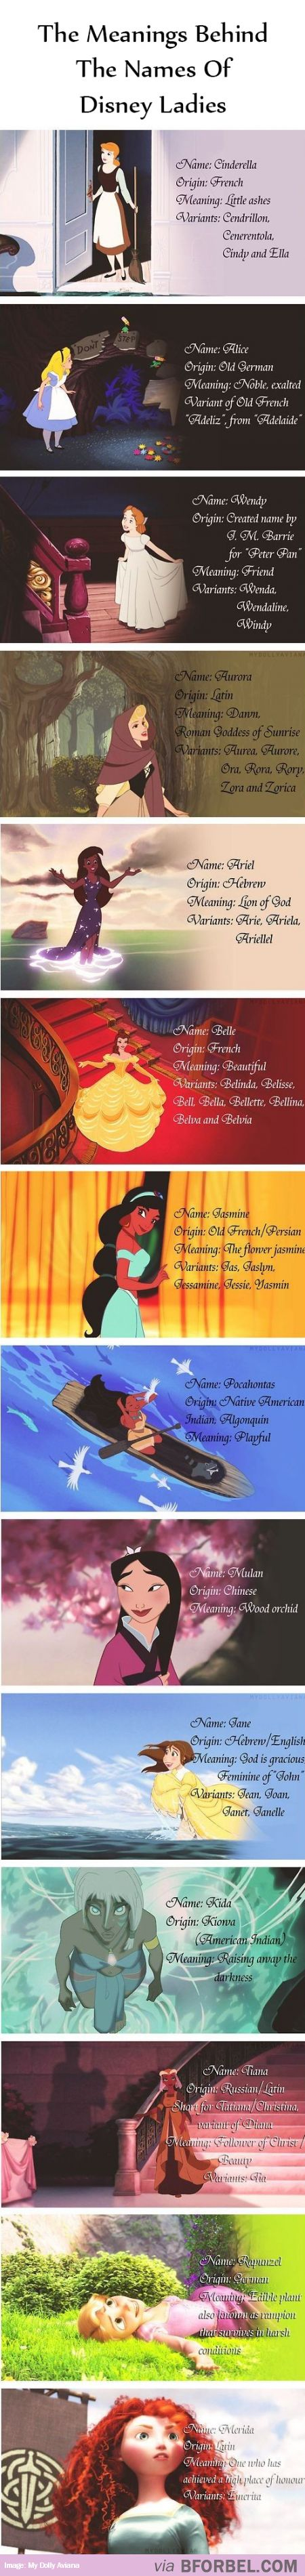 "Mulan's name literally means ""wallflower""."